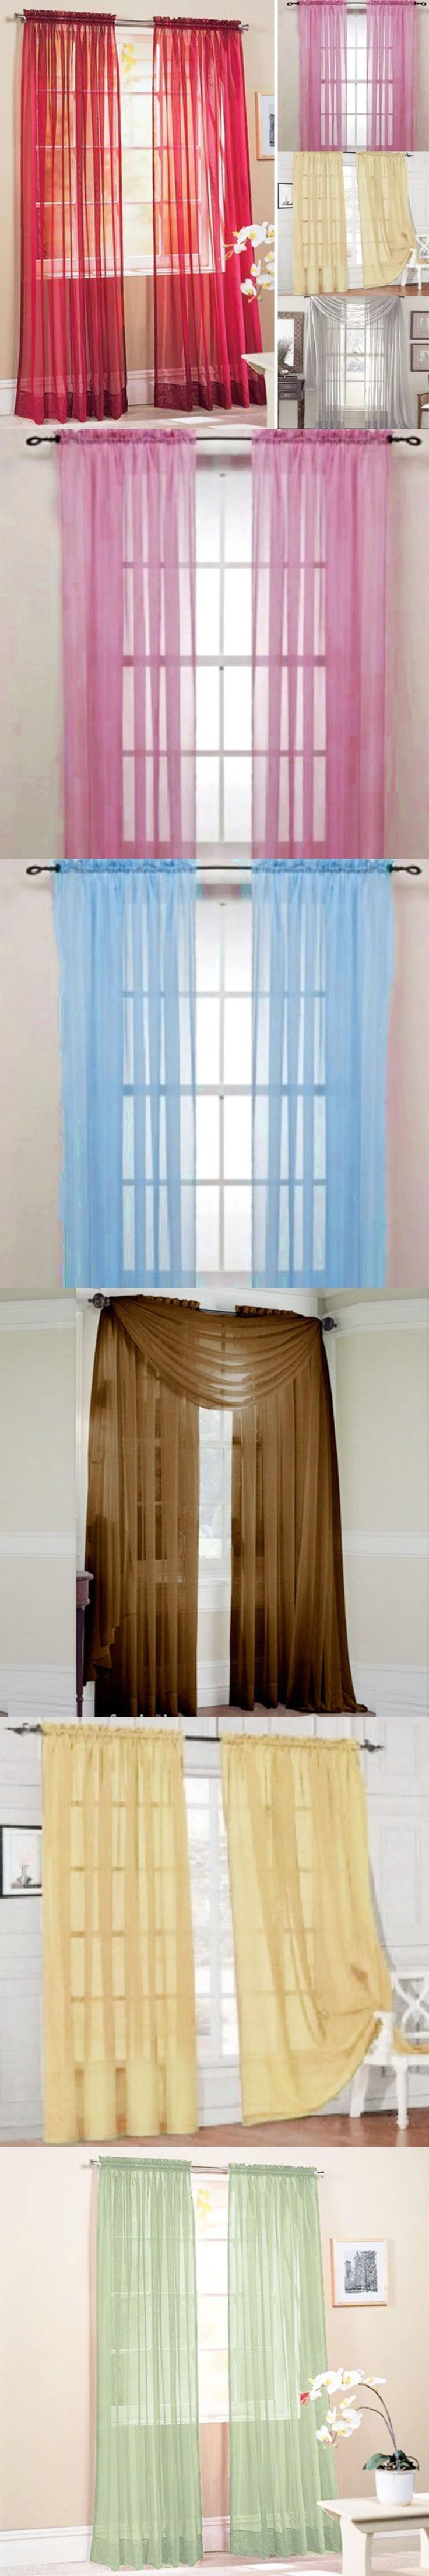 modern style tulle window screening blinds sheer voile gauze curtain balcony home decor sheers